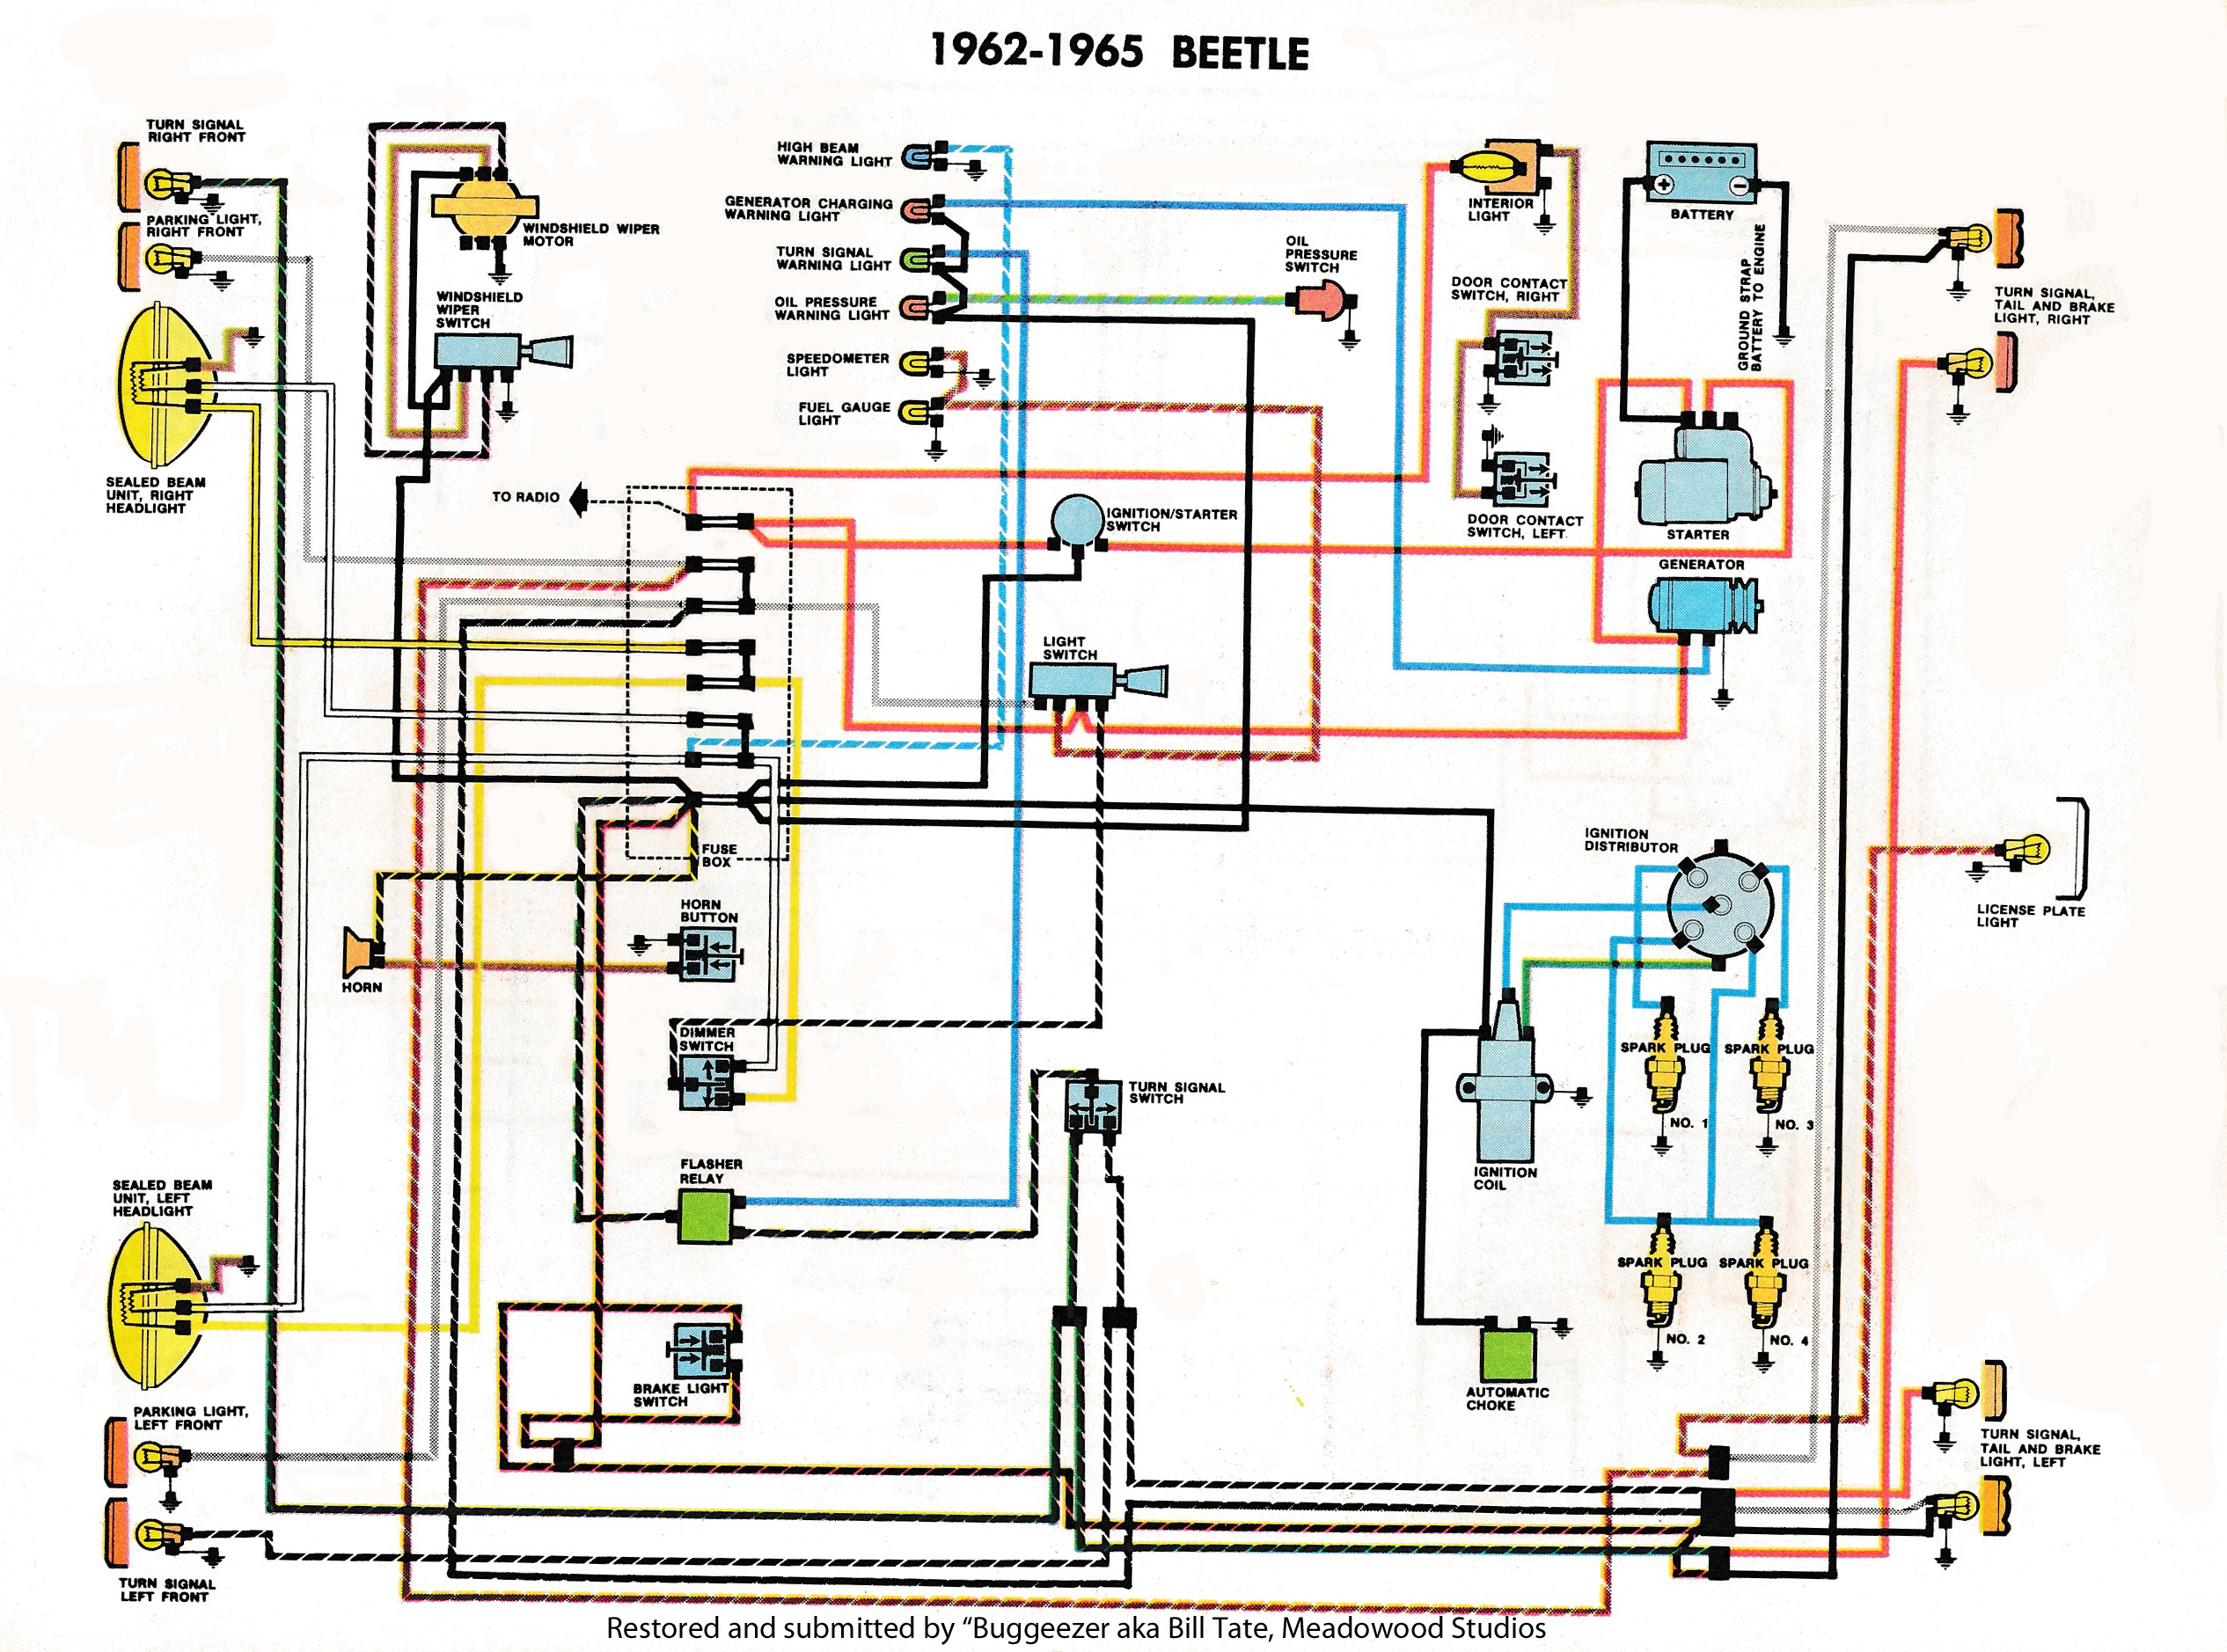 1971 Vw Super Beetle Auto Shift Wire Diagram Online Manuual Of Bus Engine Thesamba Com Type 1 Wiring Diagrams Rh